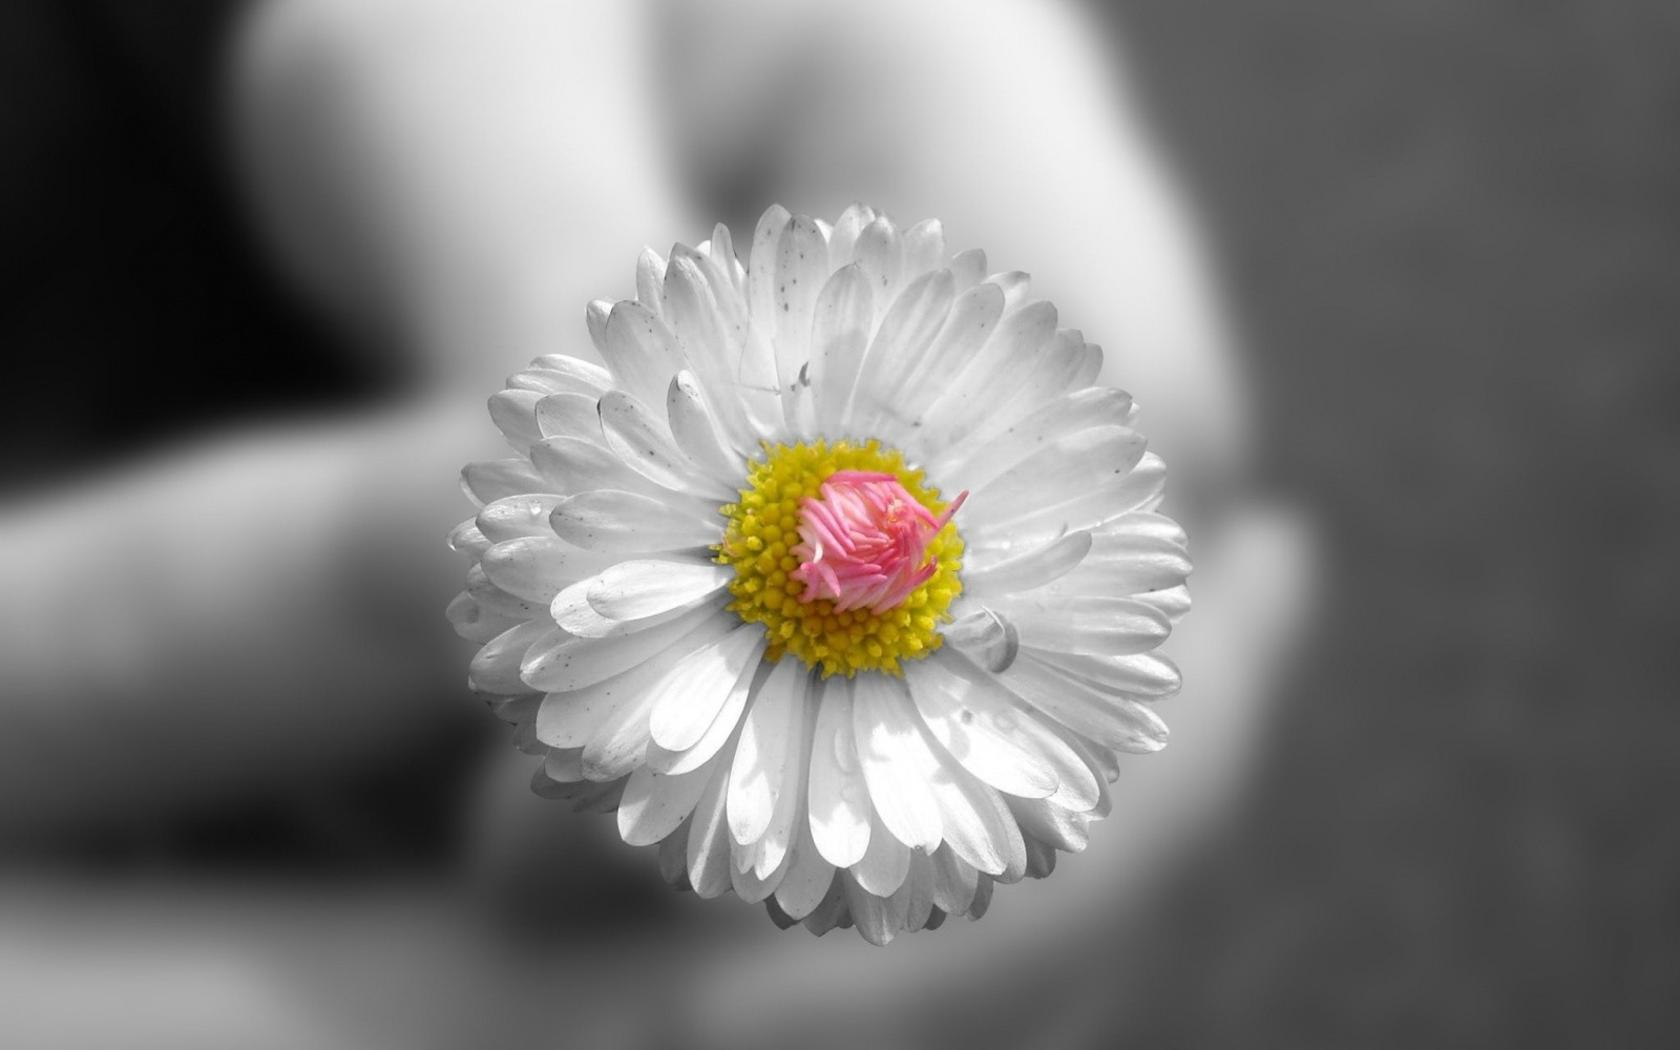 Flowers selective coloring small HD Wallpaper